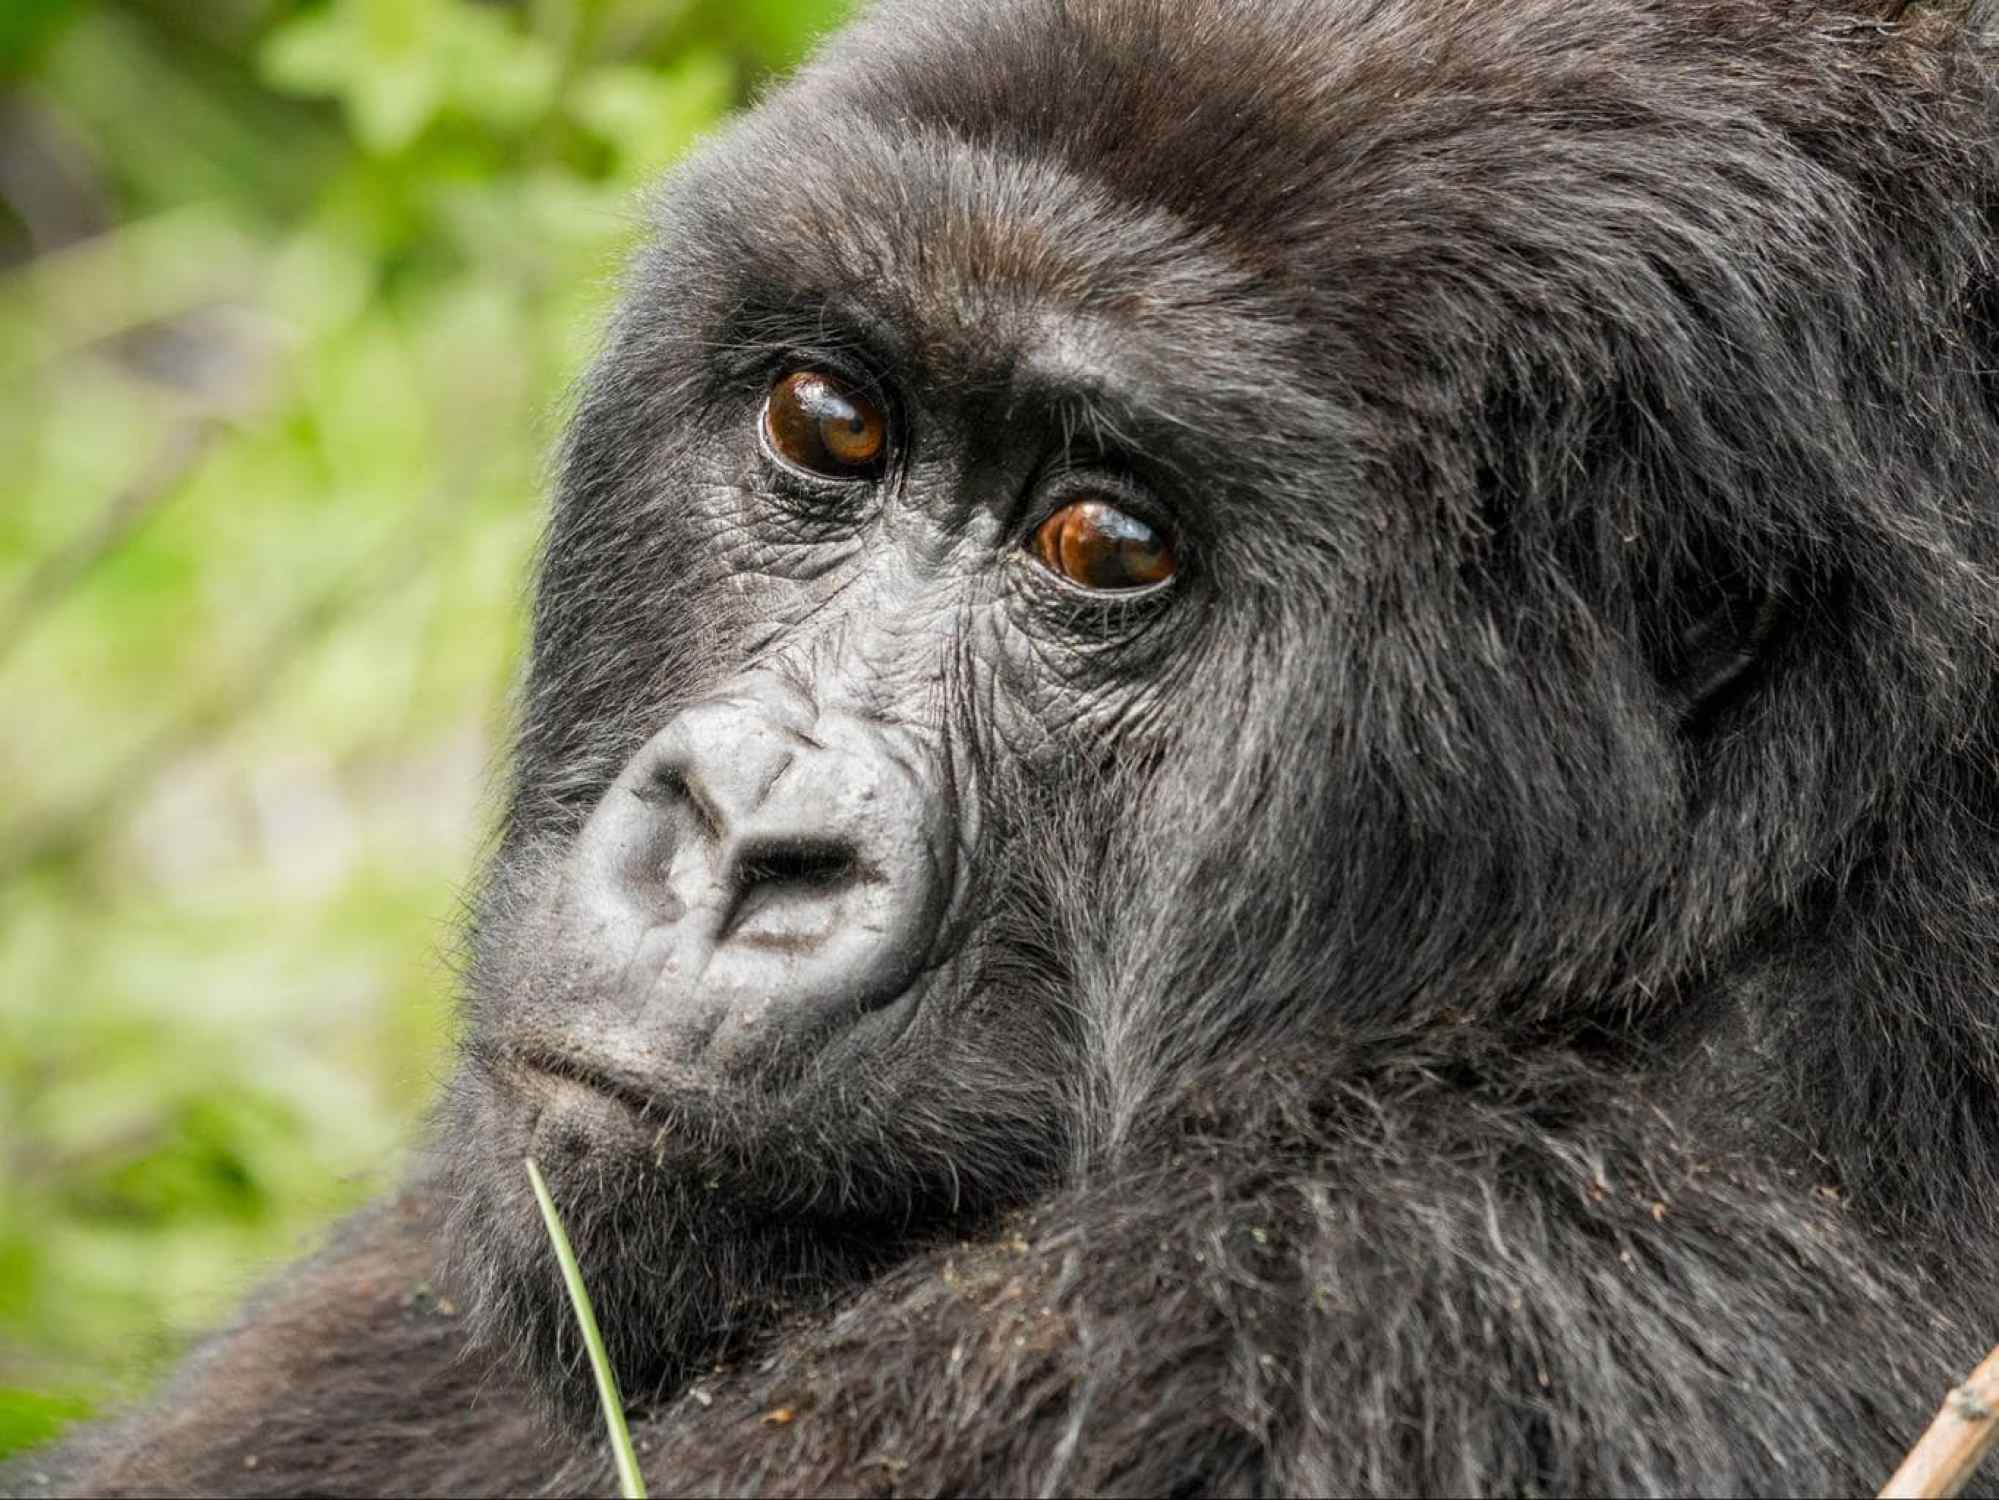 A relaxed female gorilla